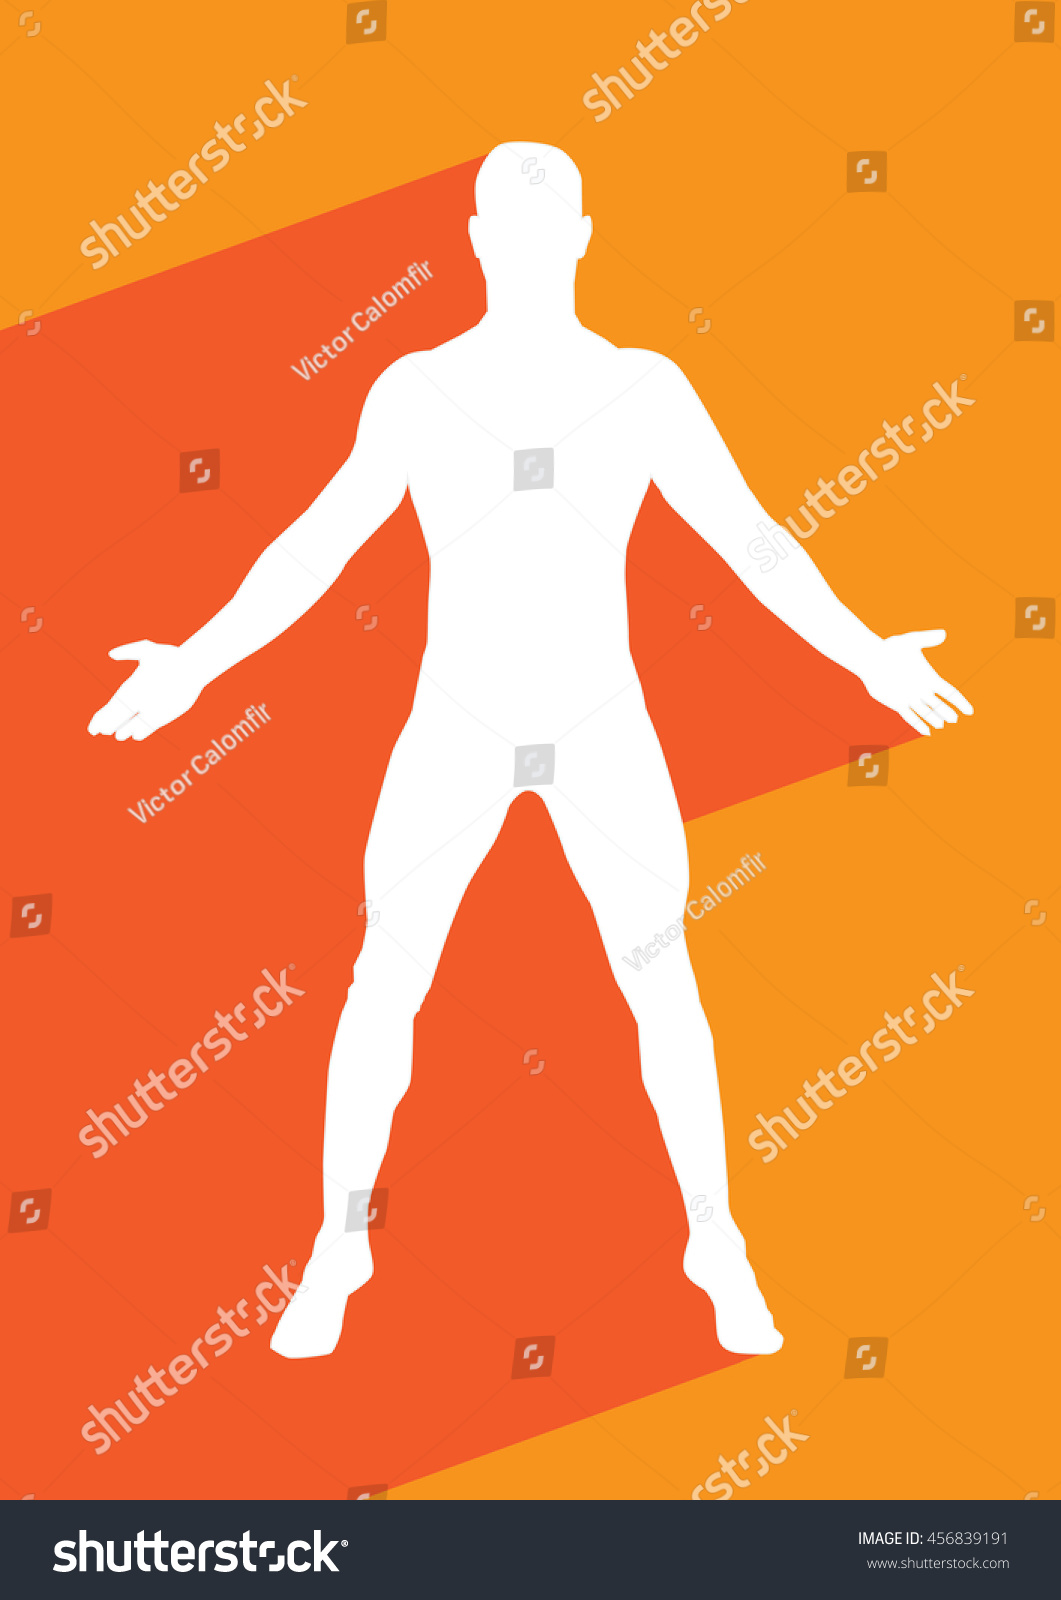 Male Human Body Belonging Adult Man Stock Vector 456839191